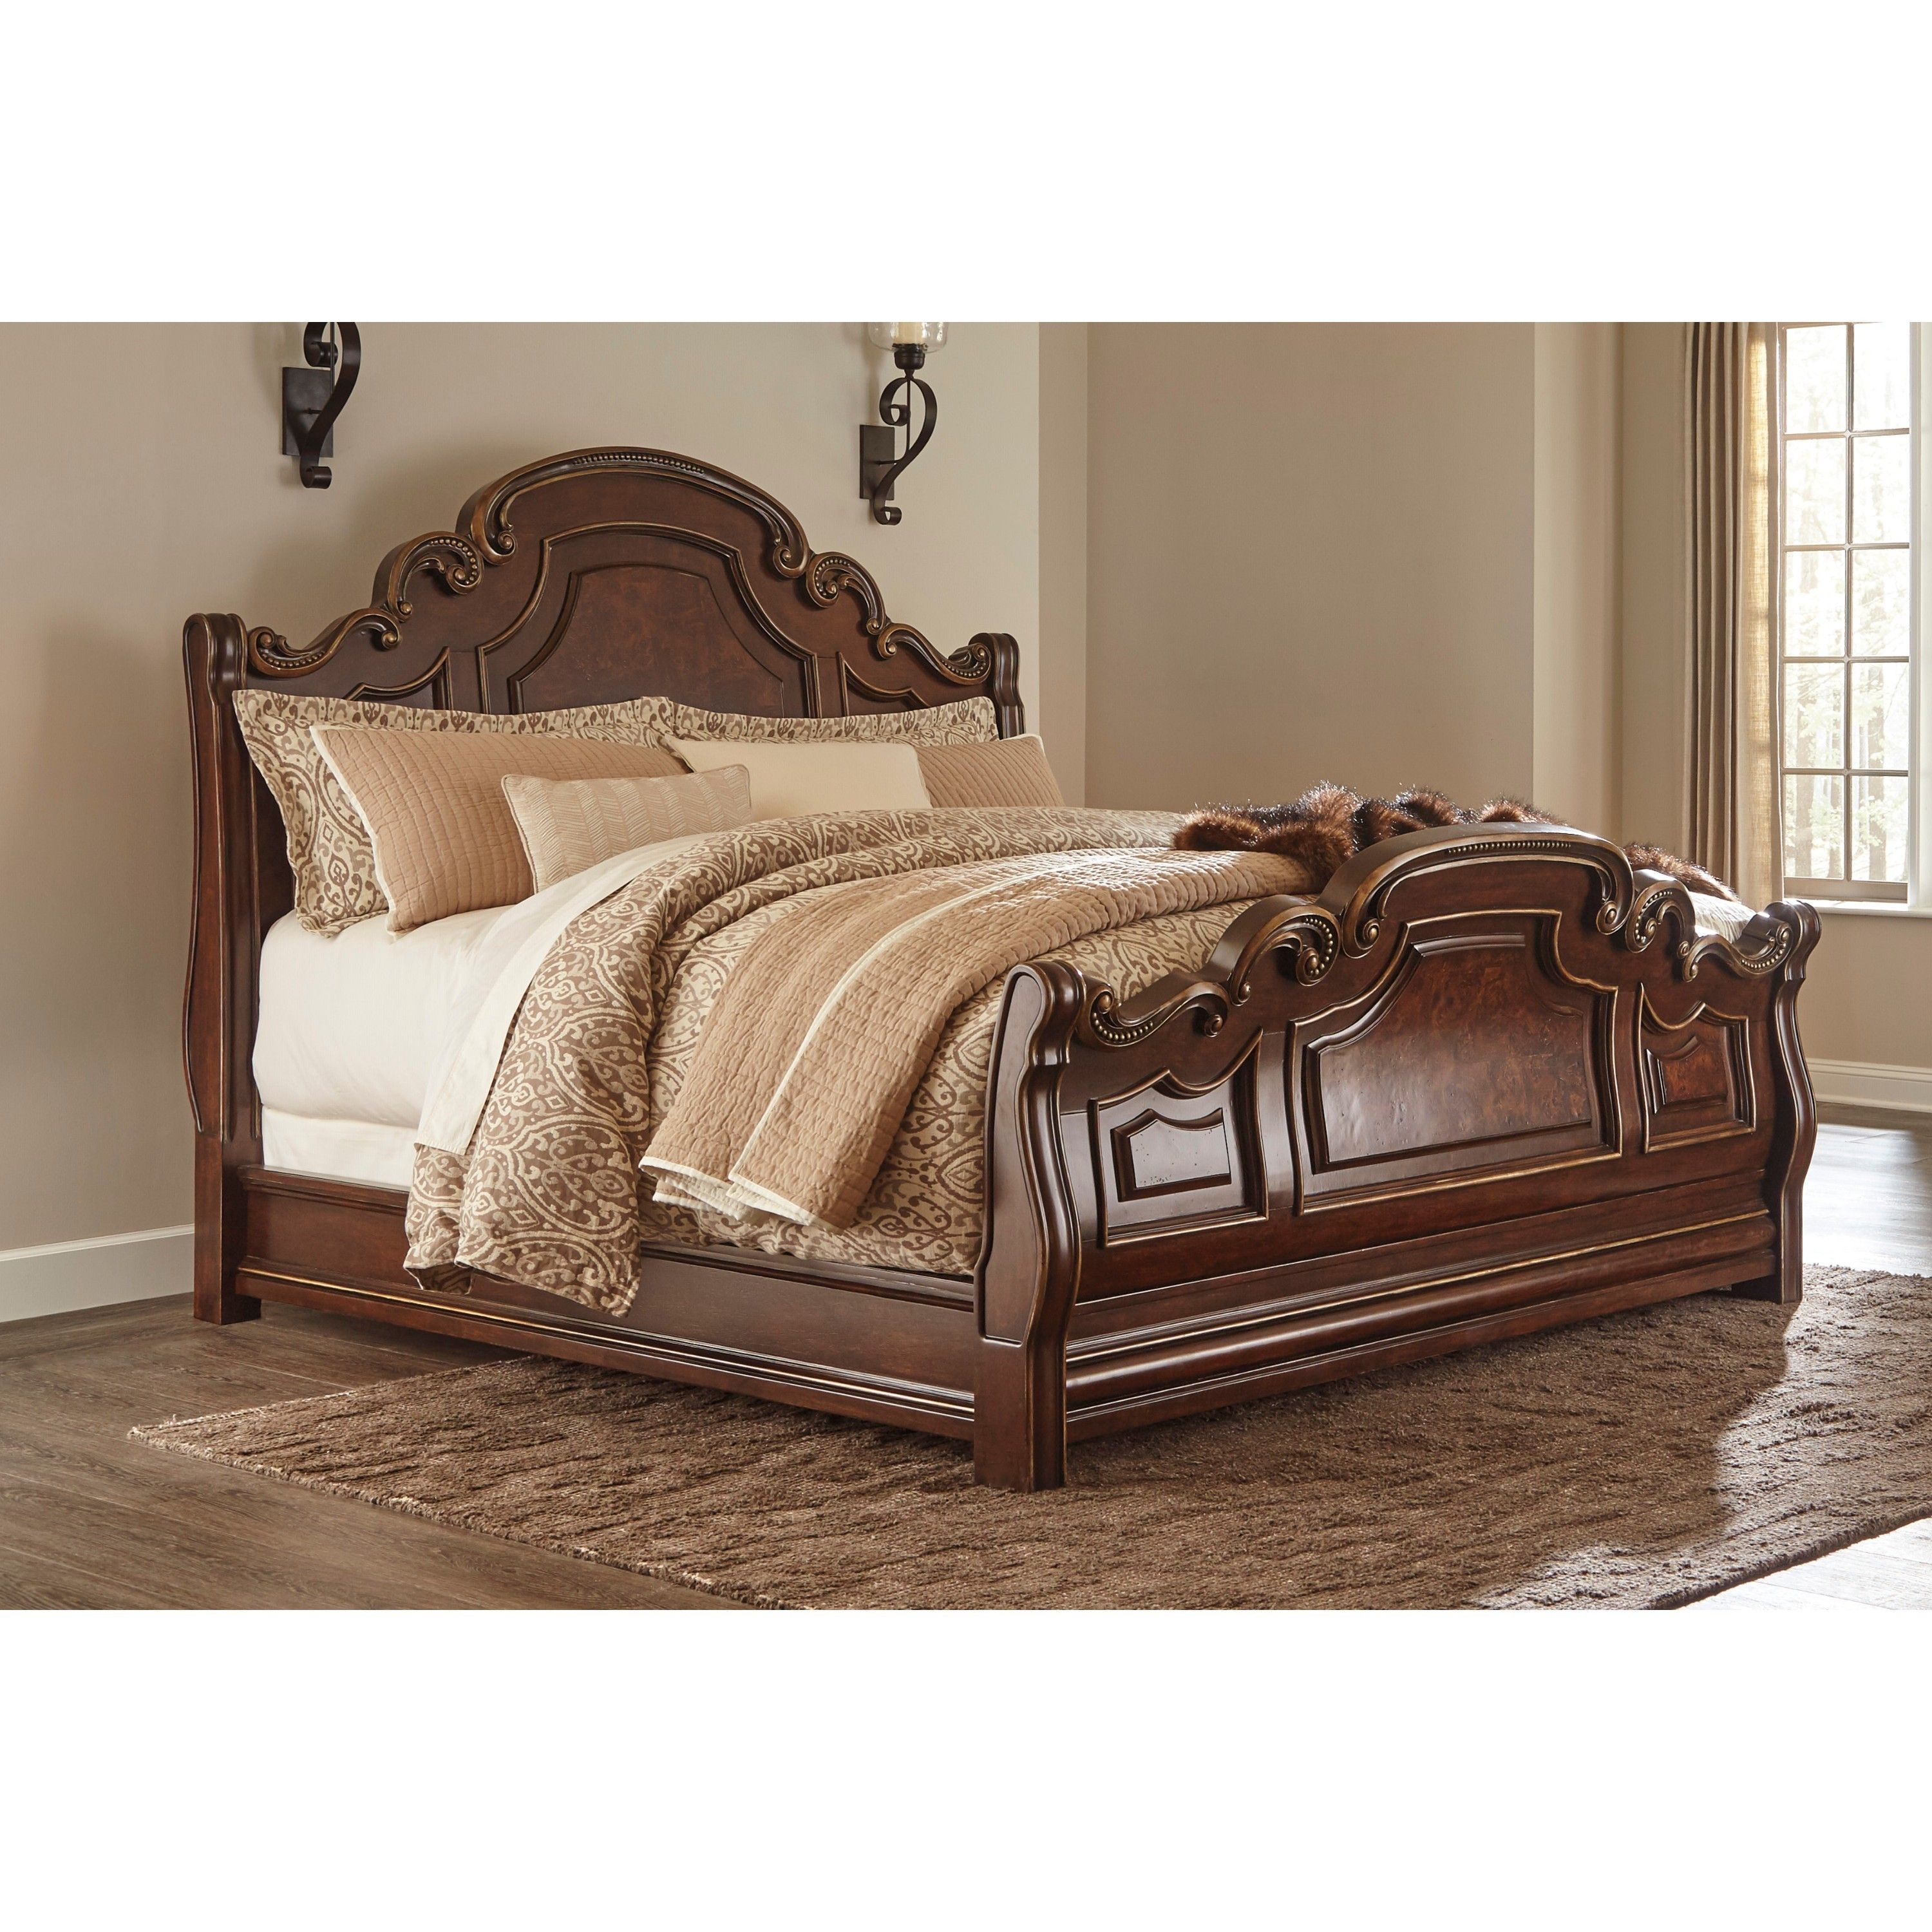 Overstock Com Online Shopping Bedding Furniture Electronics Jewelry Clothing More Sleigh Beds King Sleigh Bed Ashley Furniture